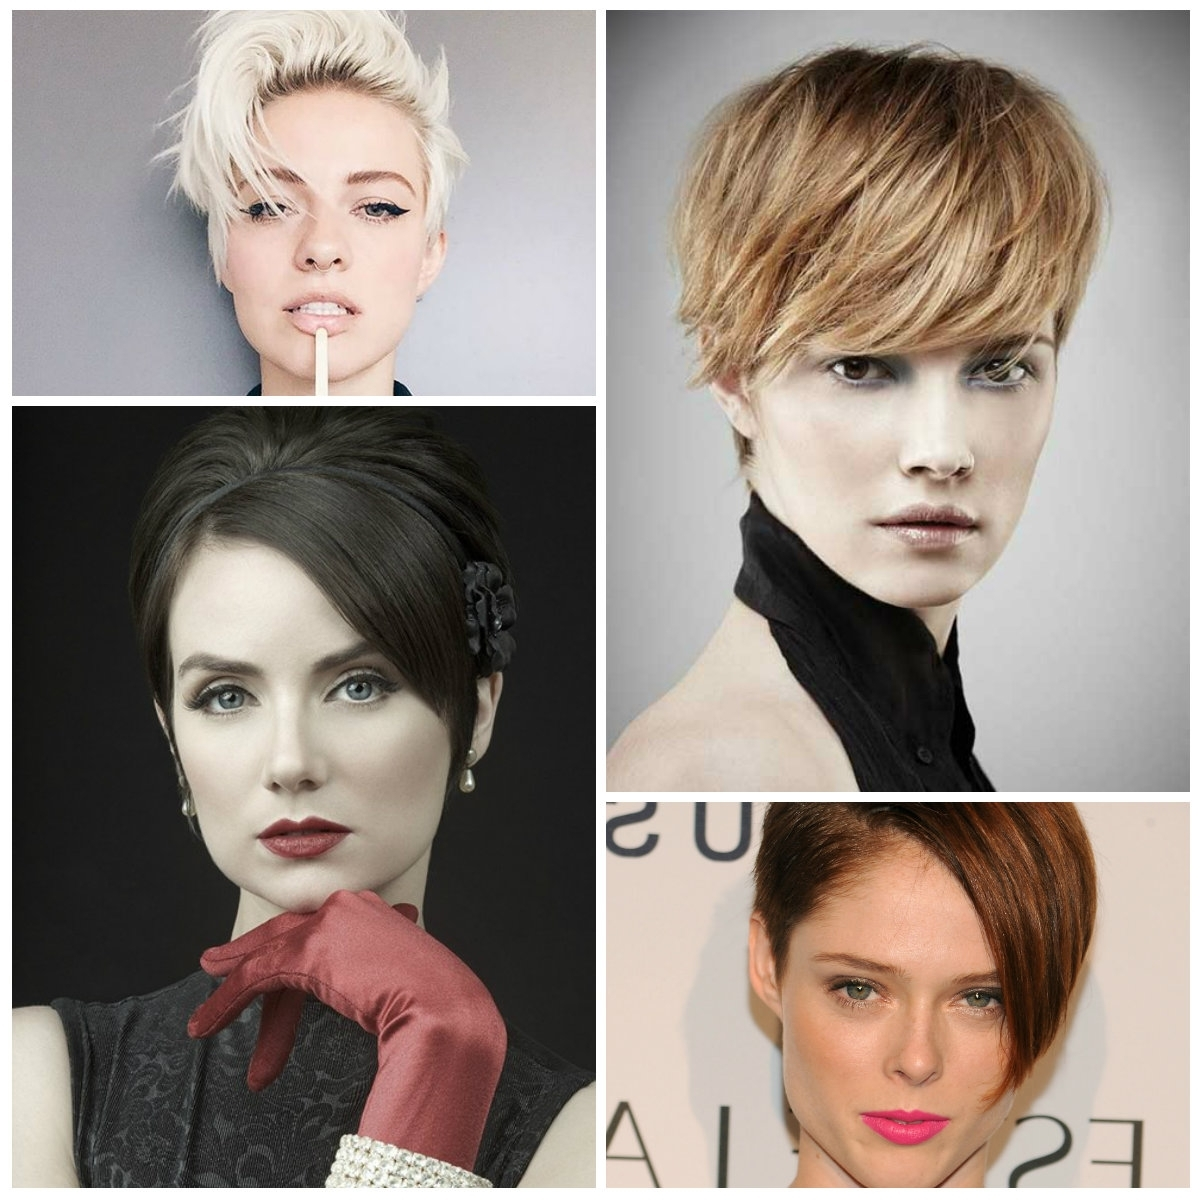 2017 Cool Pixie Haircuts For Oval Faces   Hairstyles 2018 New In Recent Pixie Hairstyles For Oval Face (View 14 of 15)